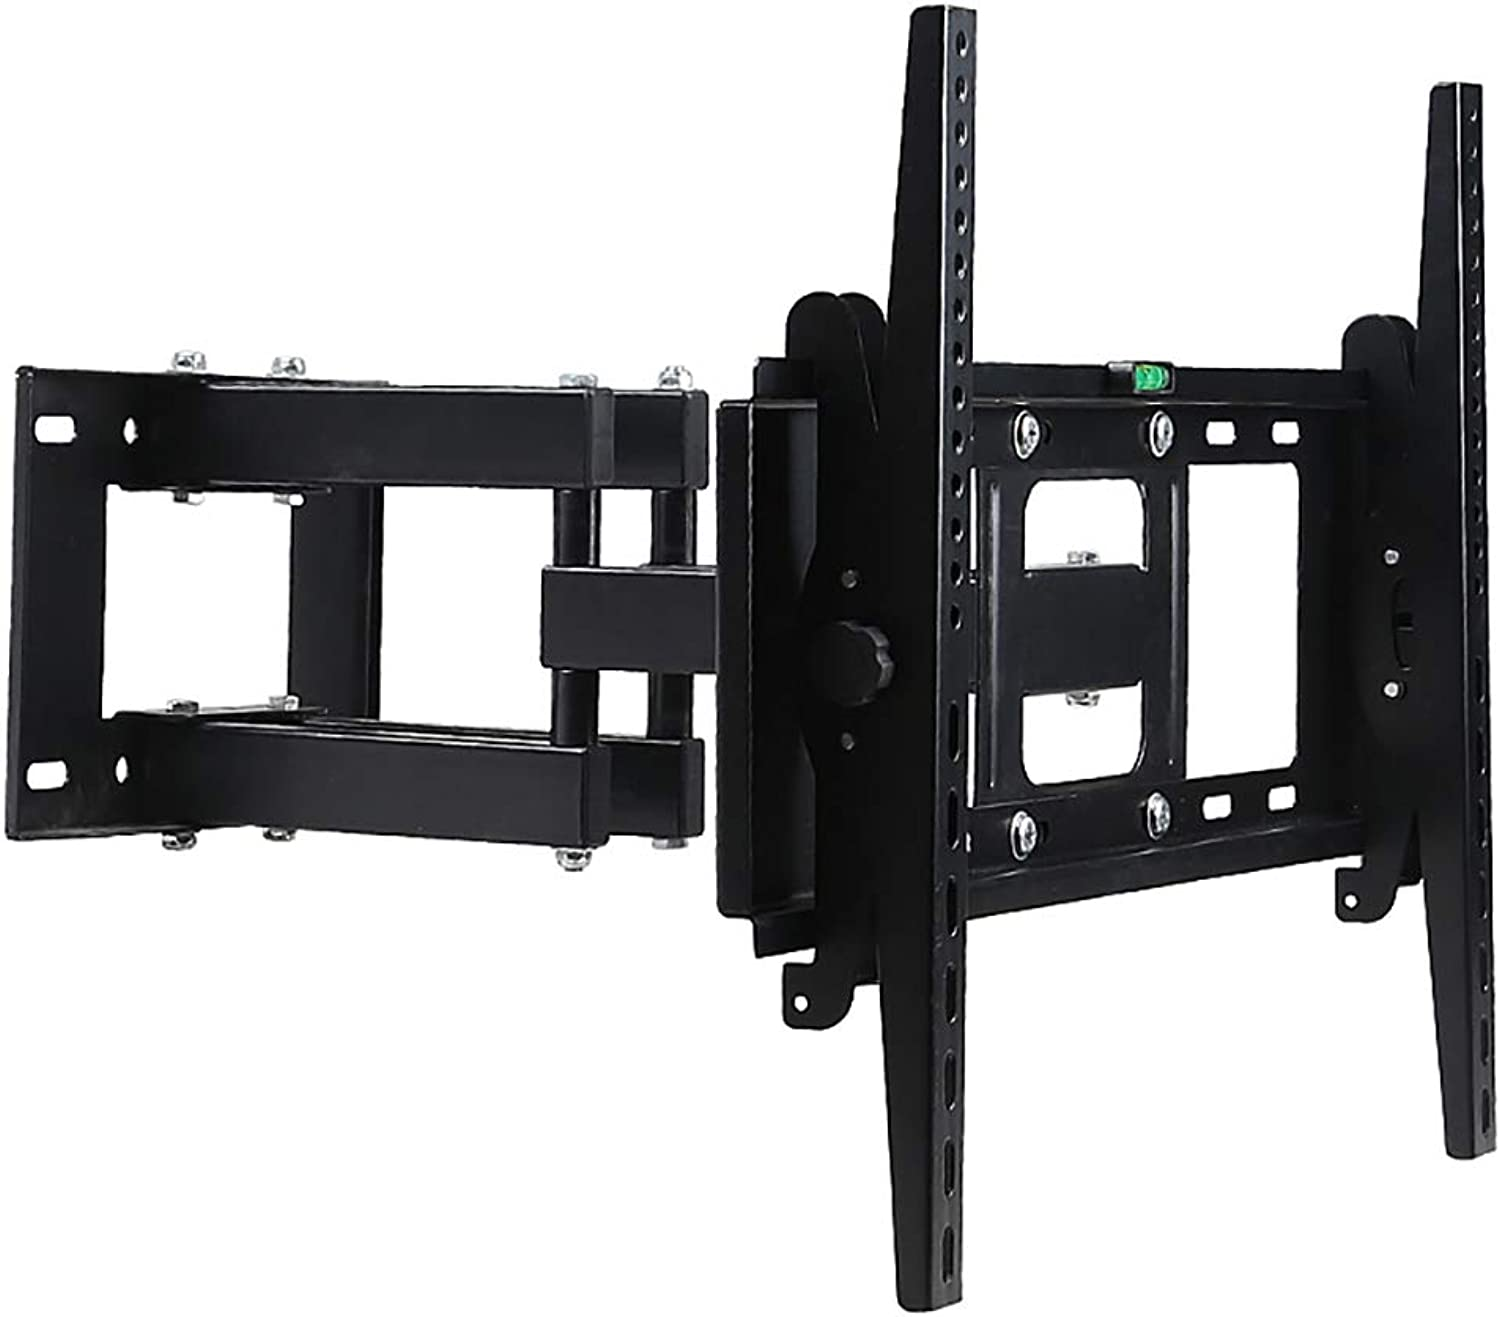 32-55 inch LCD TV Hanging Rack Telescopic redating Bracket Wall Hanging Universal Universal